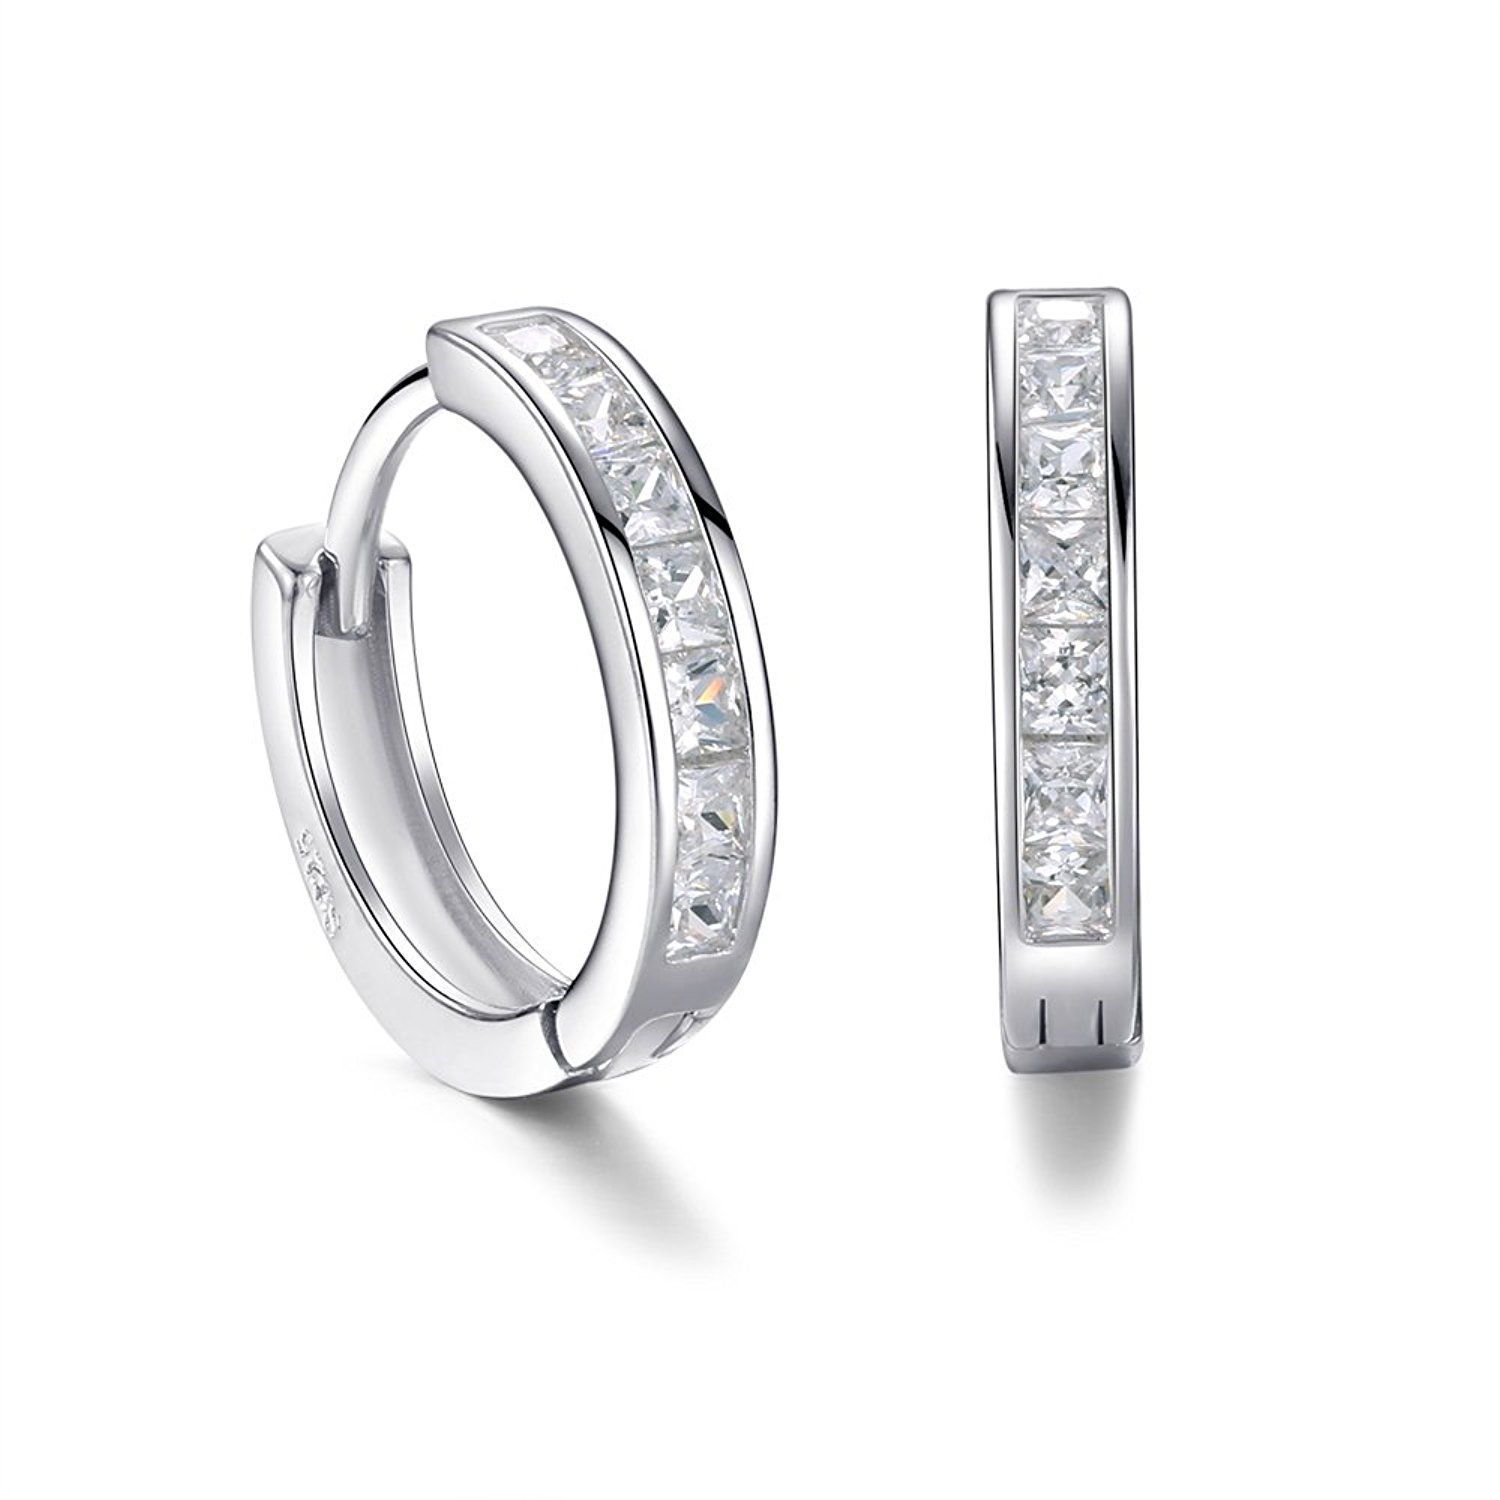 c8b615d20 Hoop Earrings Square Cubic Zircon White Gold Plated 925 sterling silver  Hinged Earrings -- Click